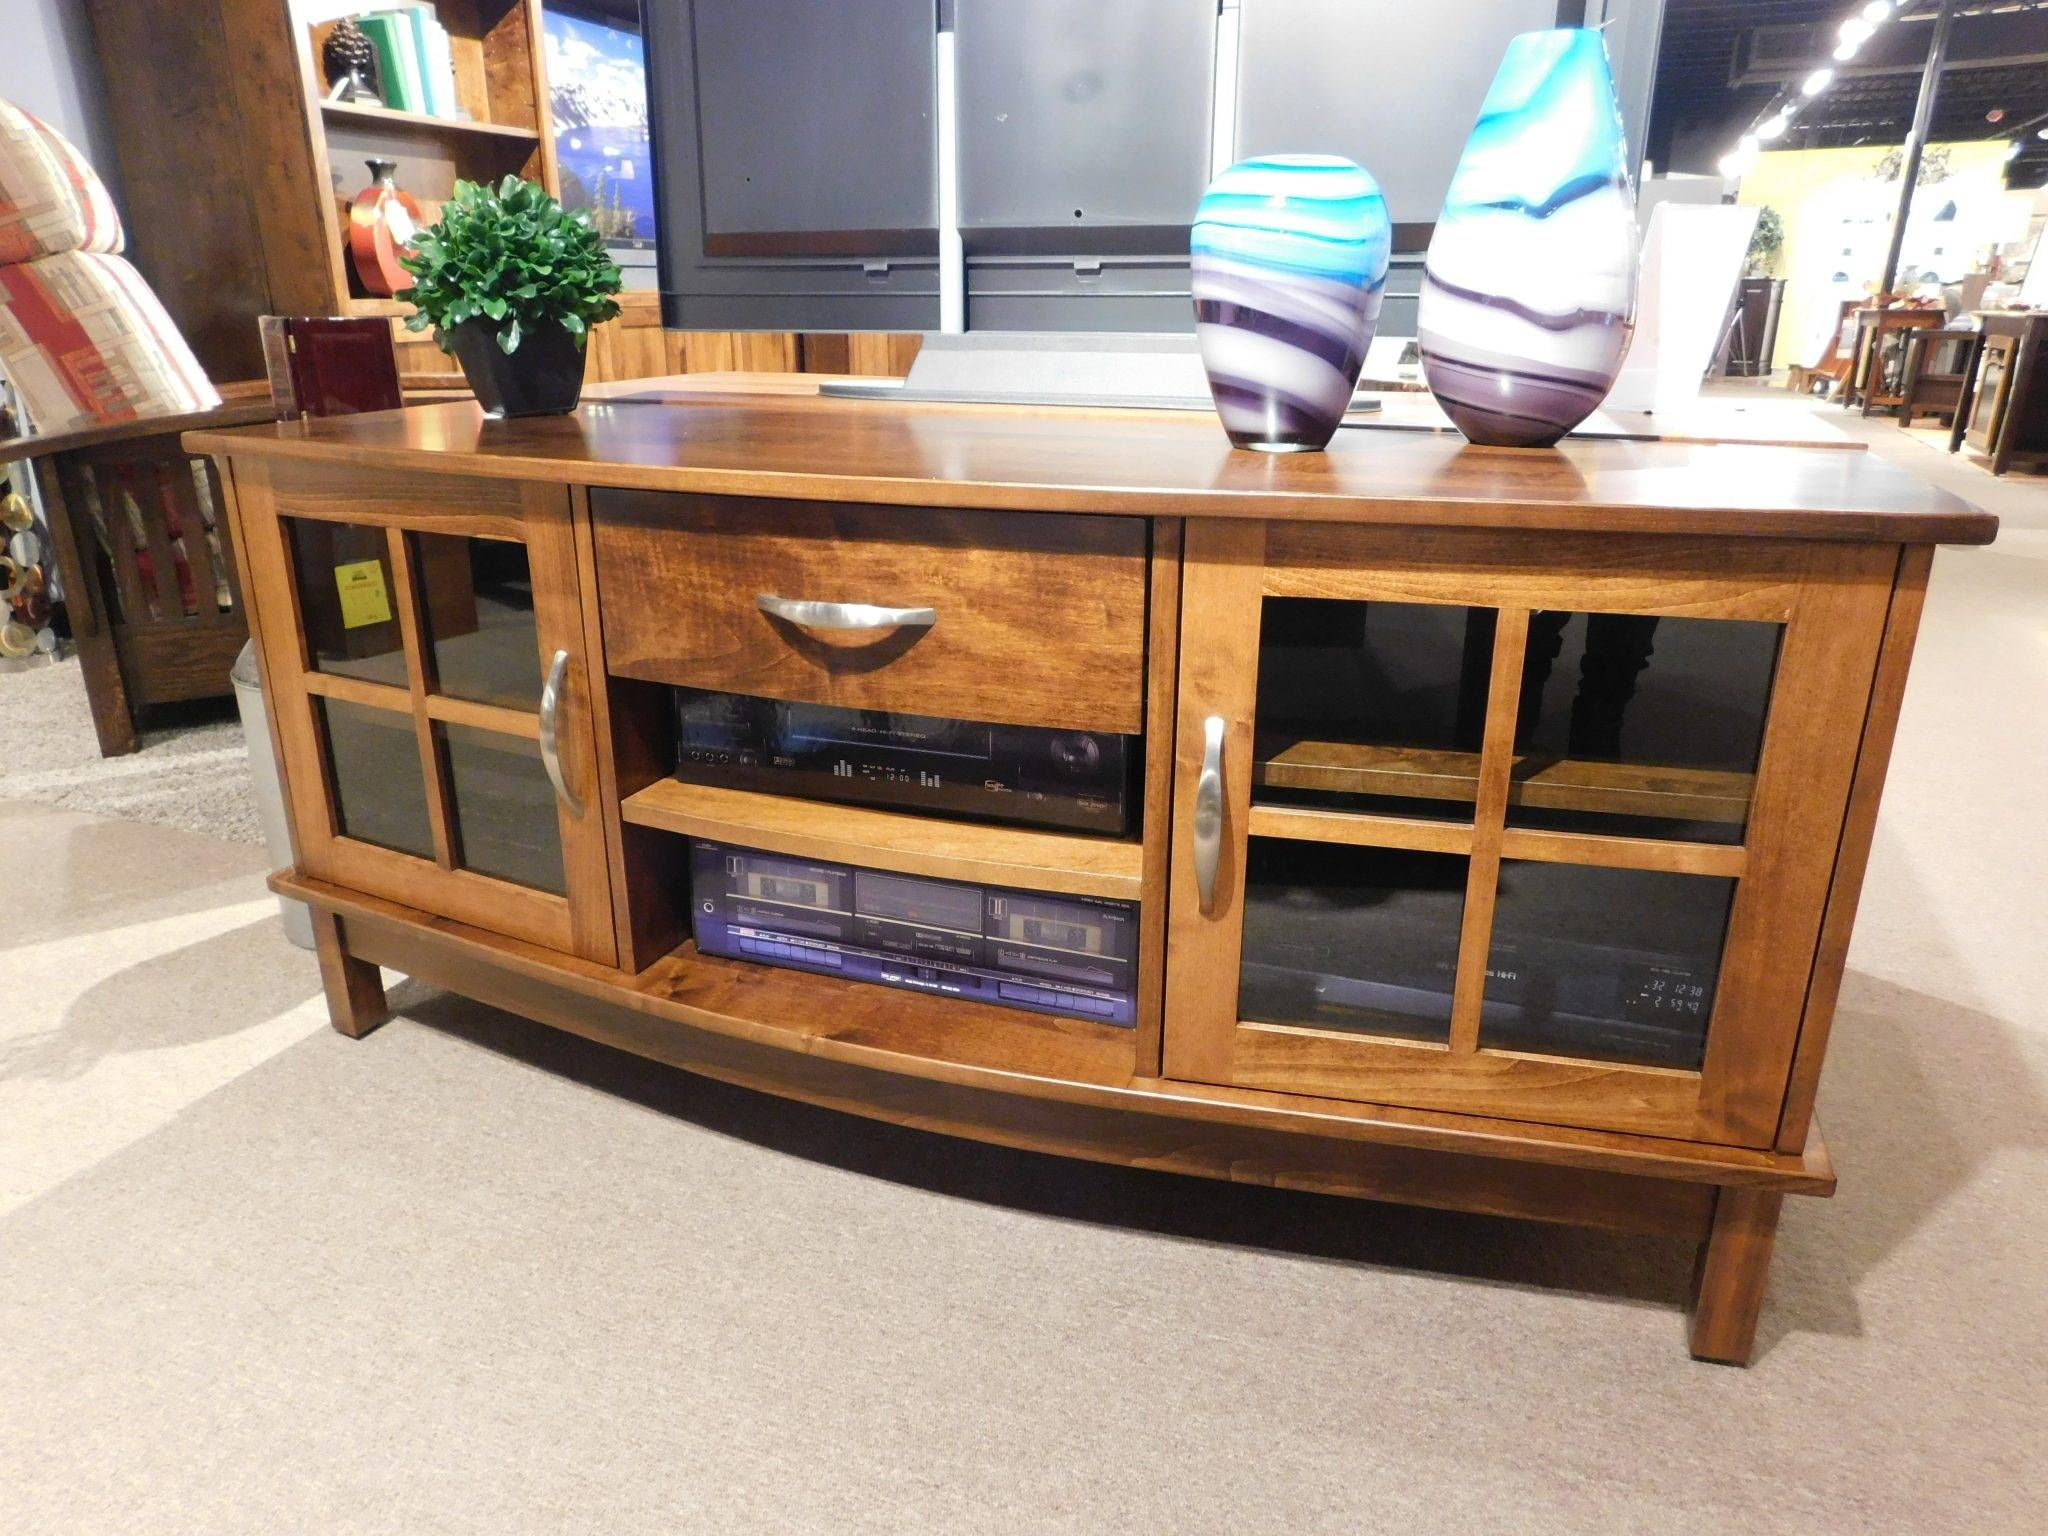 Tv Stands & Entertainment Centers | Don's Home Furniture Madison, Wi In Sideboards And Tv Stands (View 29 of 30)